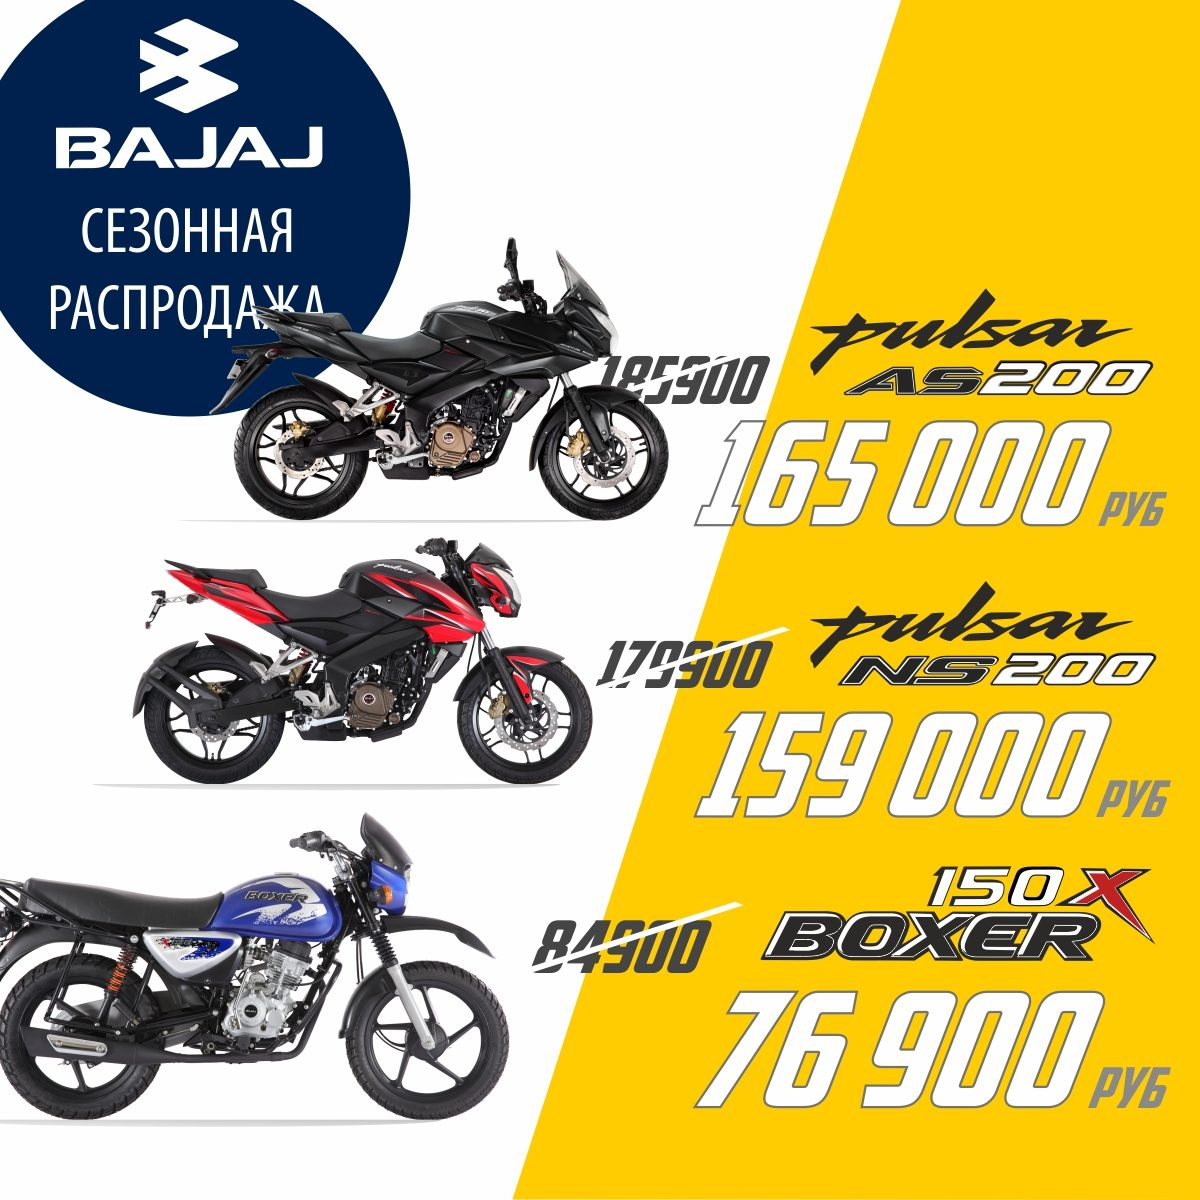 bajaj auto ltd Get live bse/ nse share price of bajaj auto view bajaj auto historical charts, stock market reports, financial report, volume, market performance.